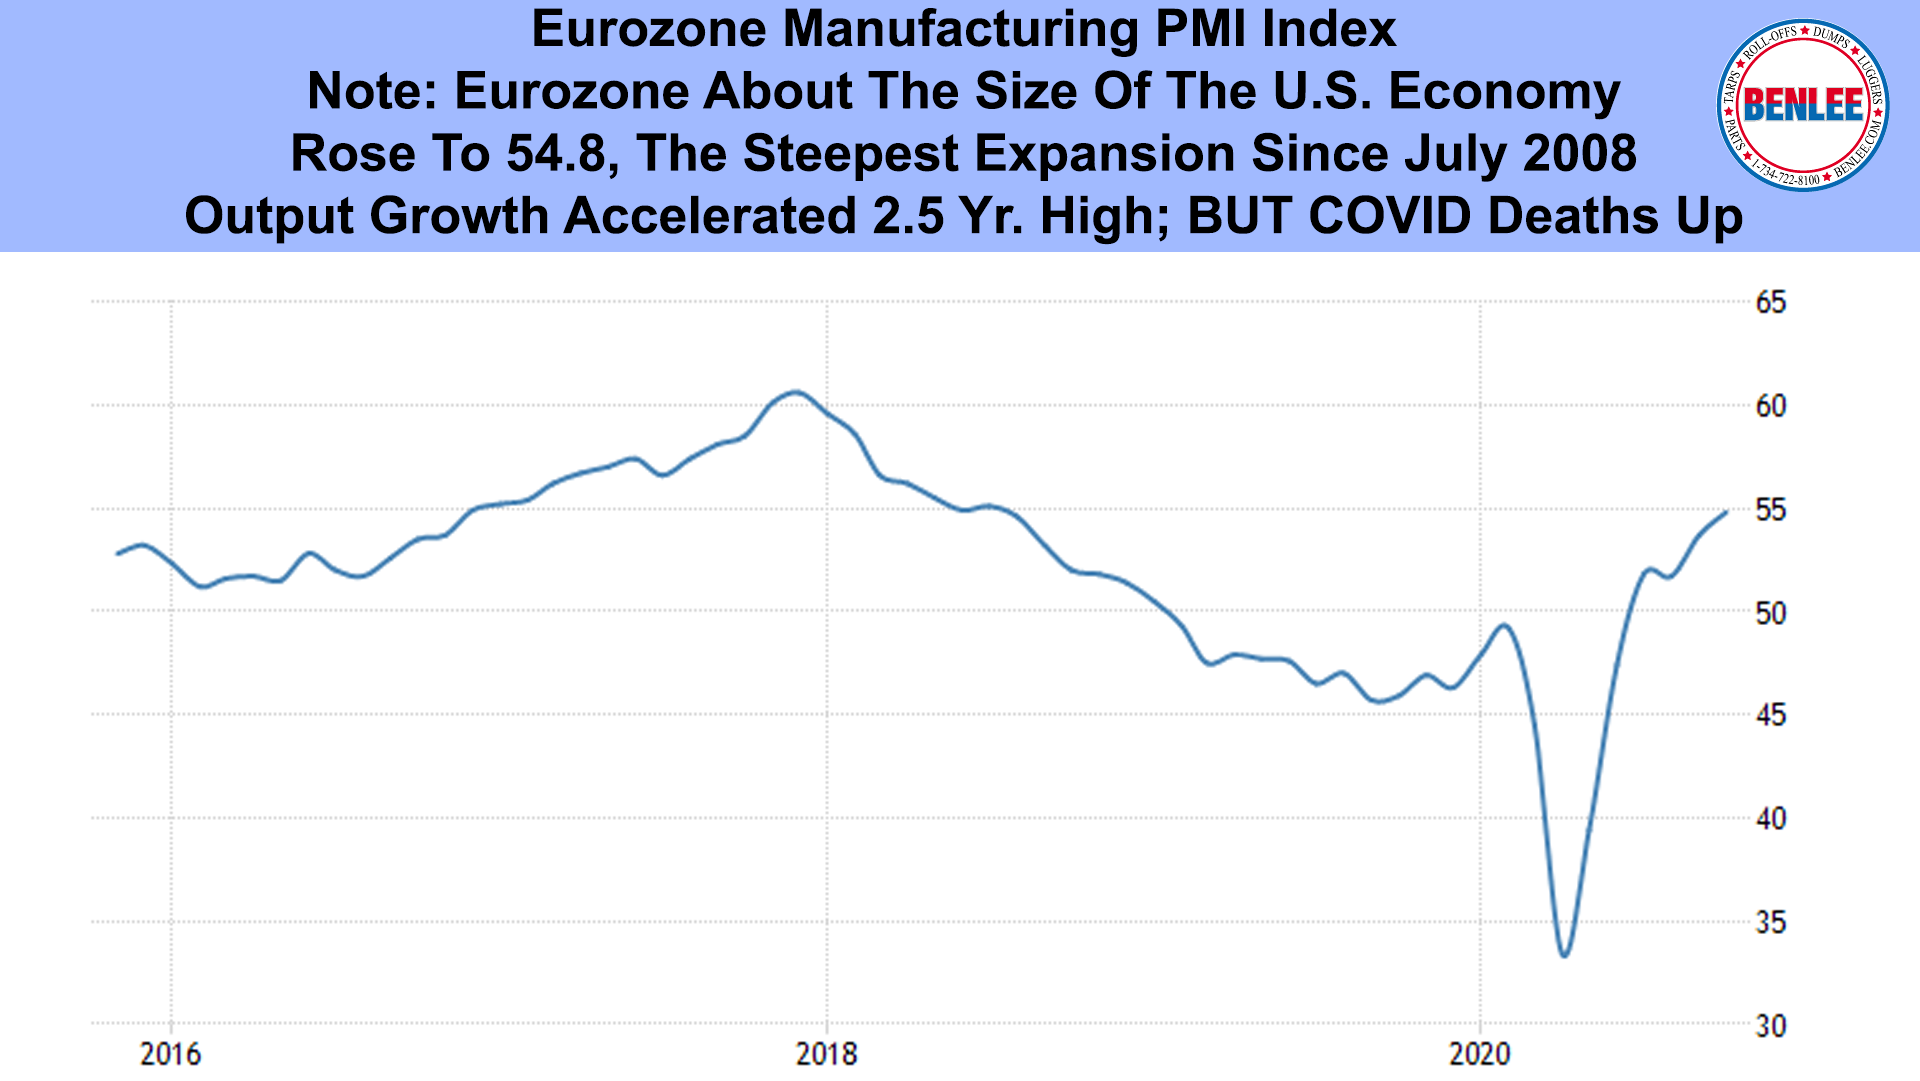 Eurozone PMI Index